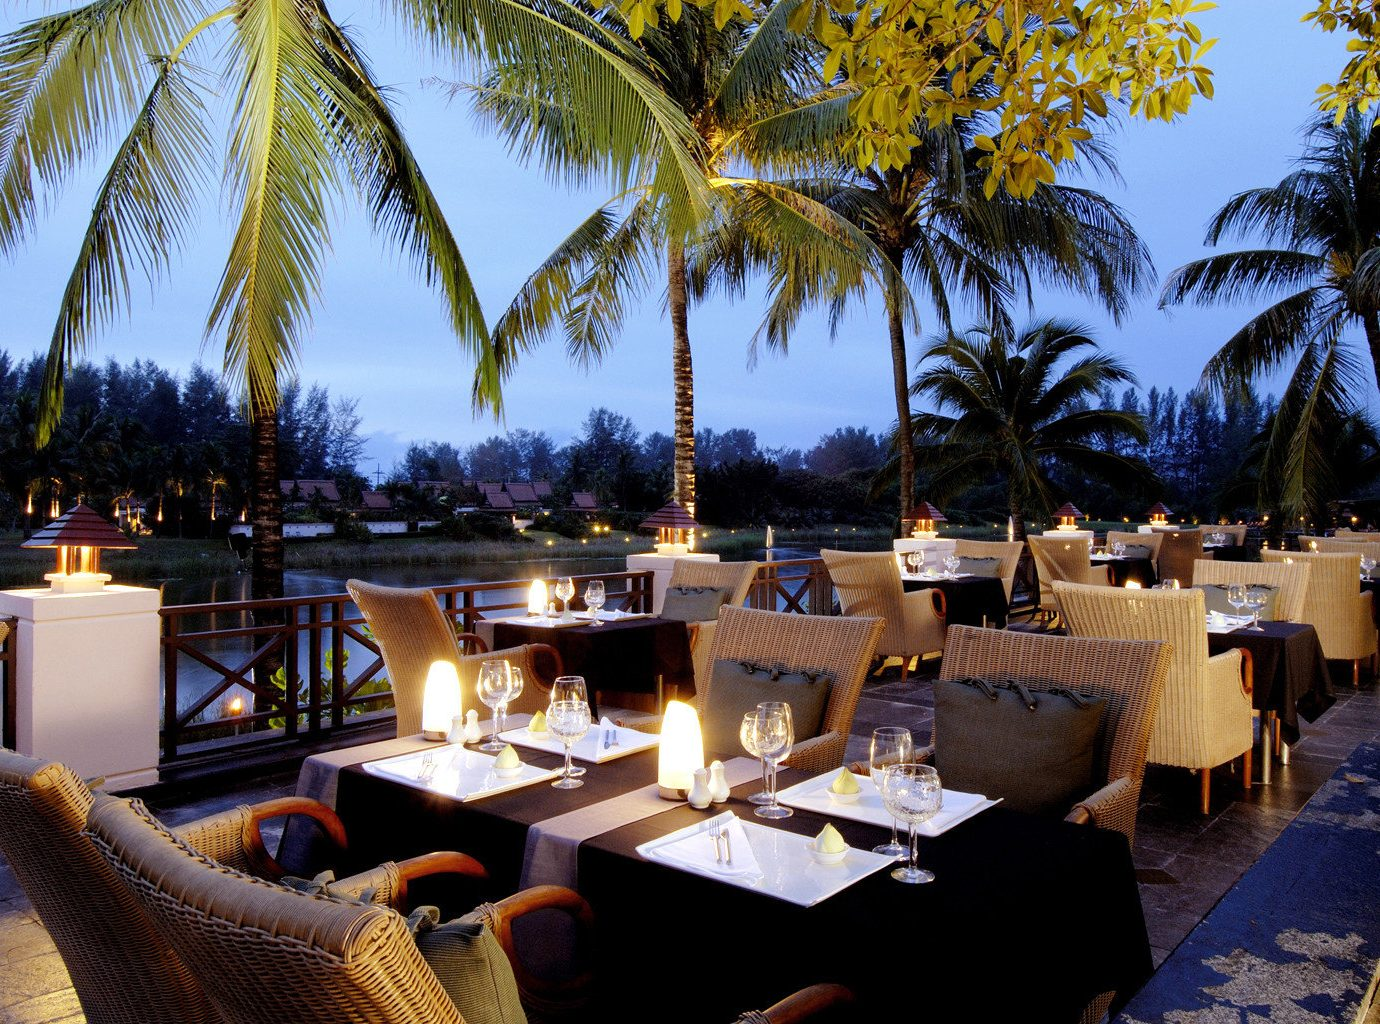 Beachfront Dining Drink Eat Honeymoon Hotels Luxury Romantic Wellness tree outdoor palm Resort restaurant estate meal